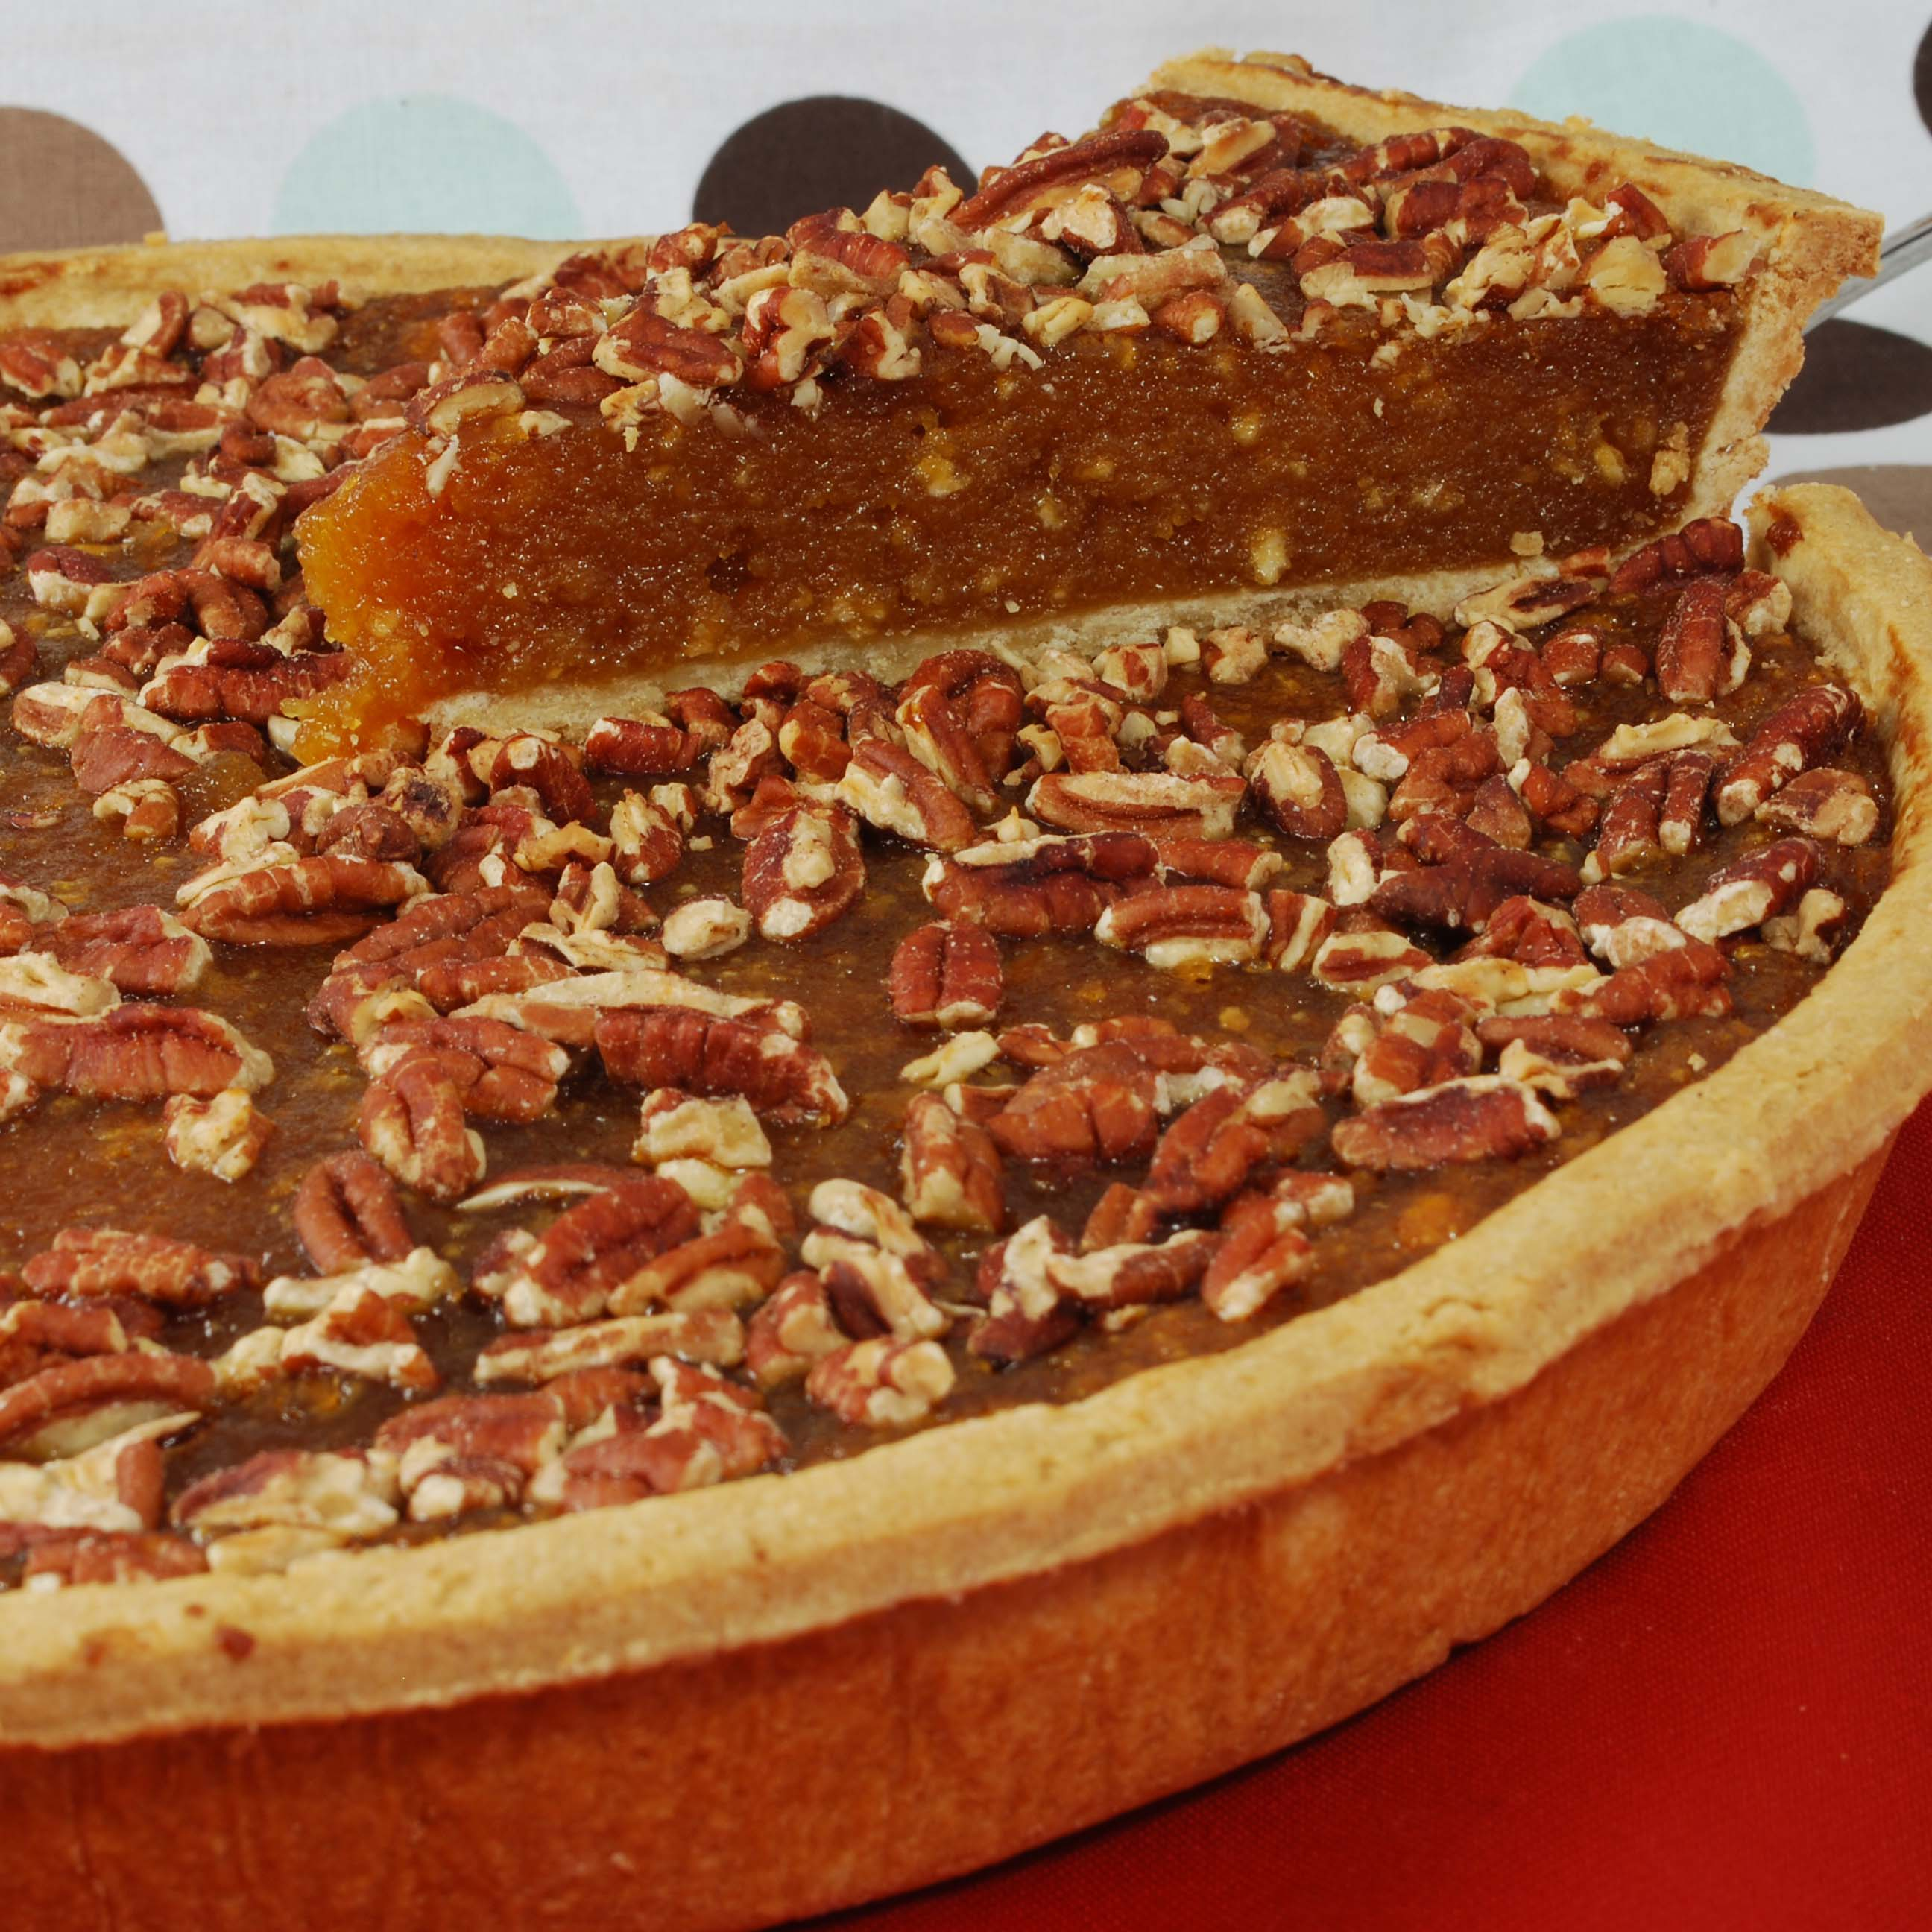 Pecan and Treacle Tart